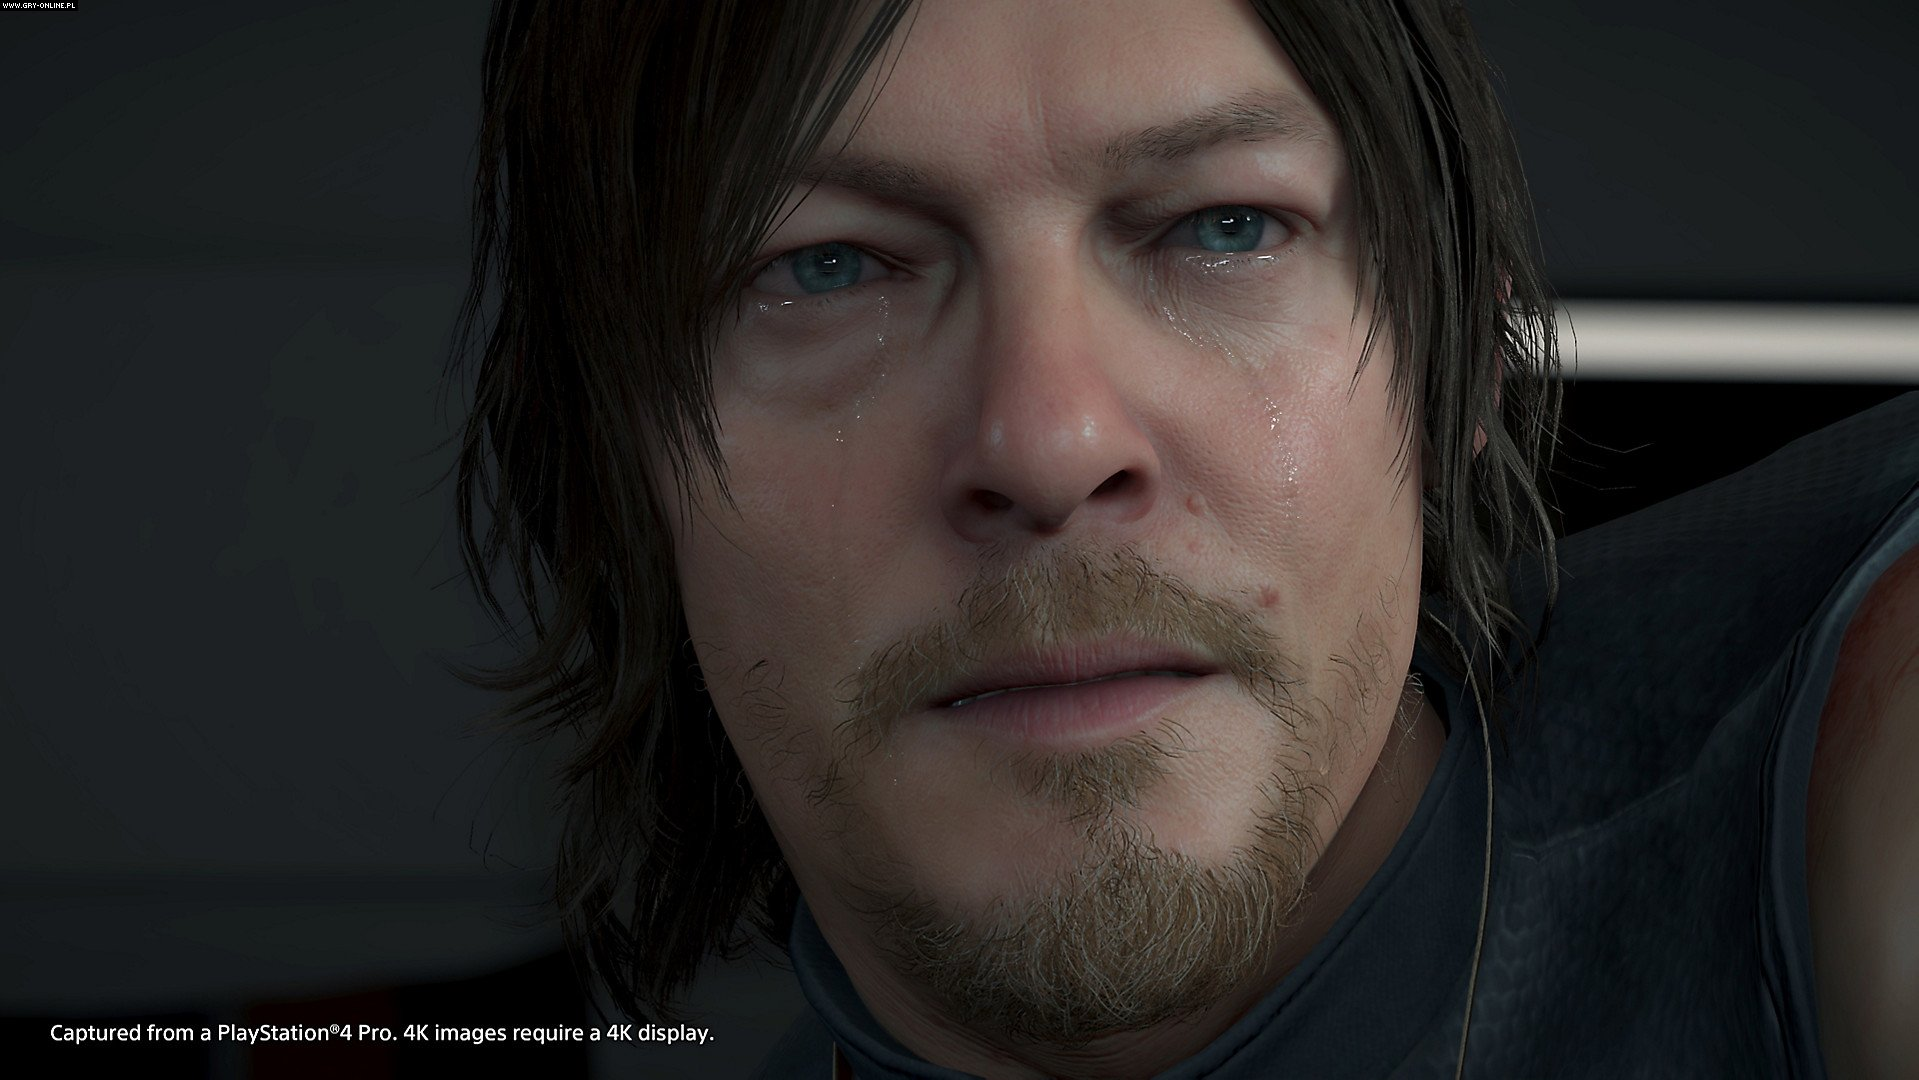 Death Stranding PS4 Games Image 10/58, Kojima Productions, Sony Interactive Entertainment